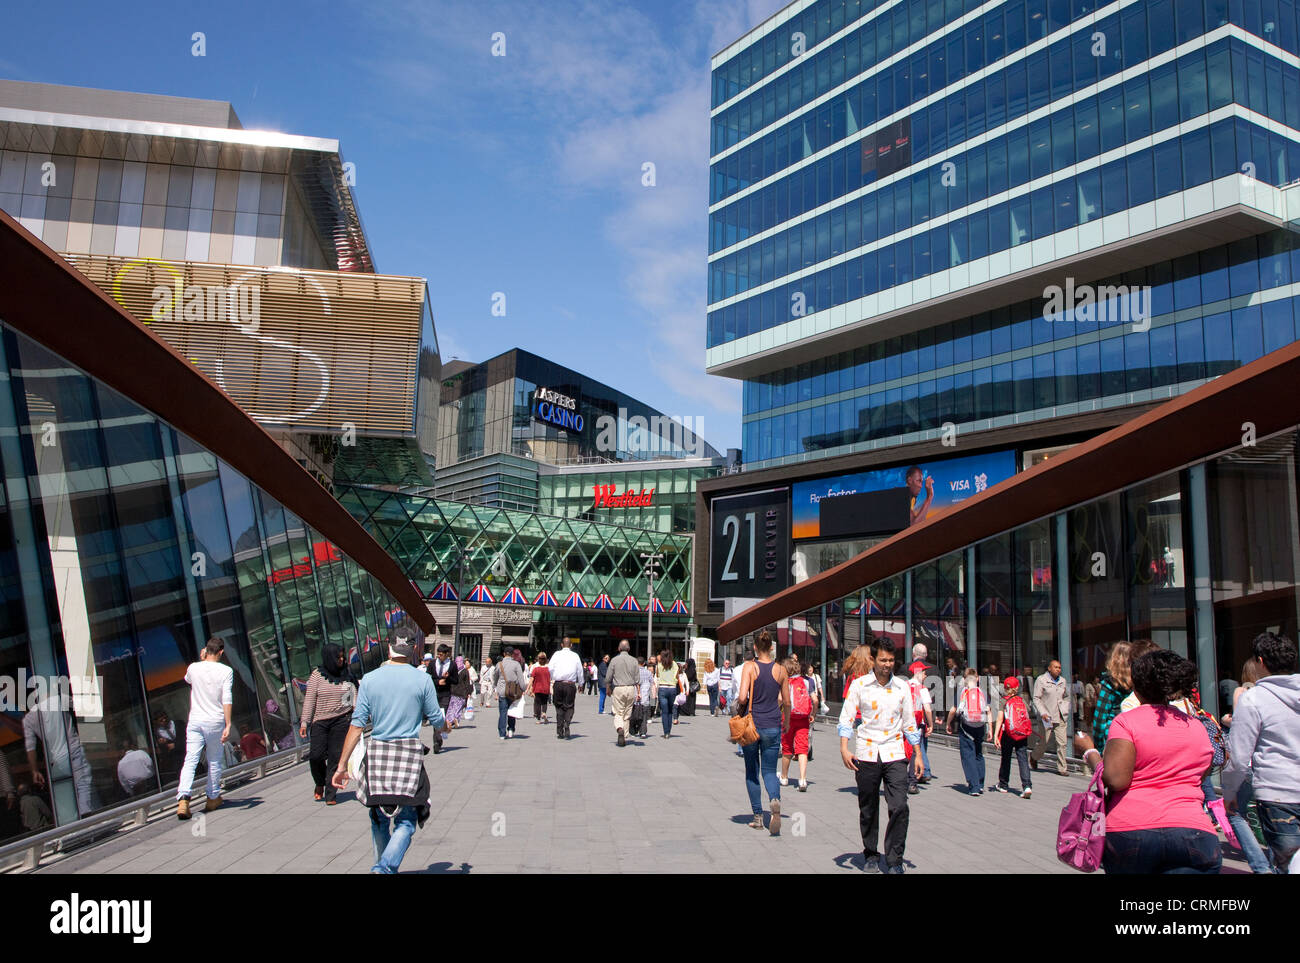 Entrance to Westfield Stratford City shopping centre, London Stock Photo